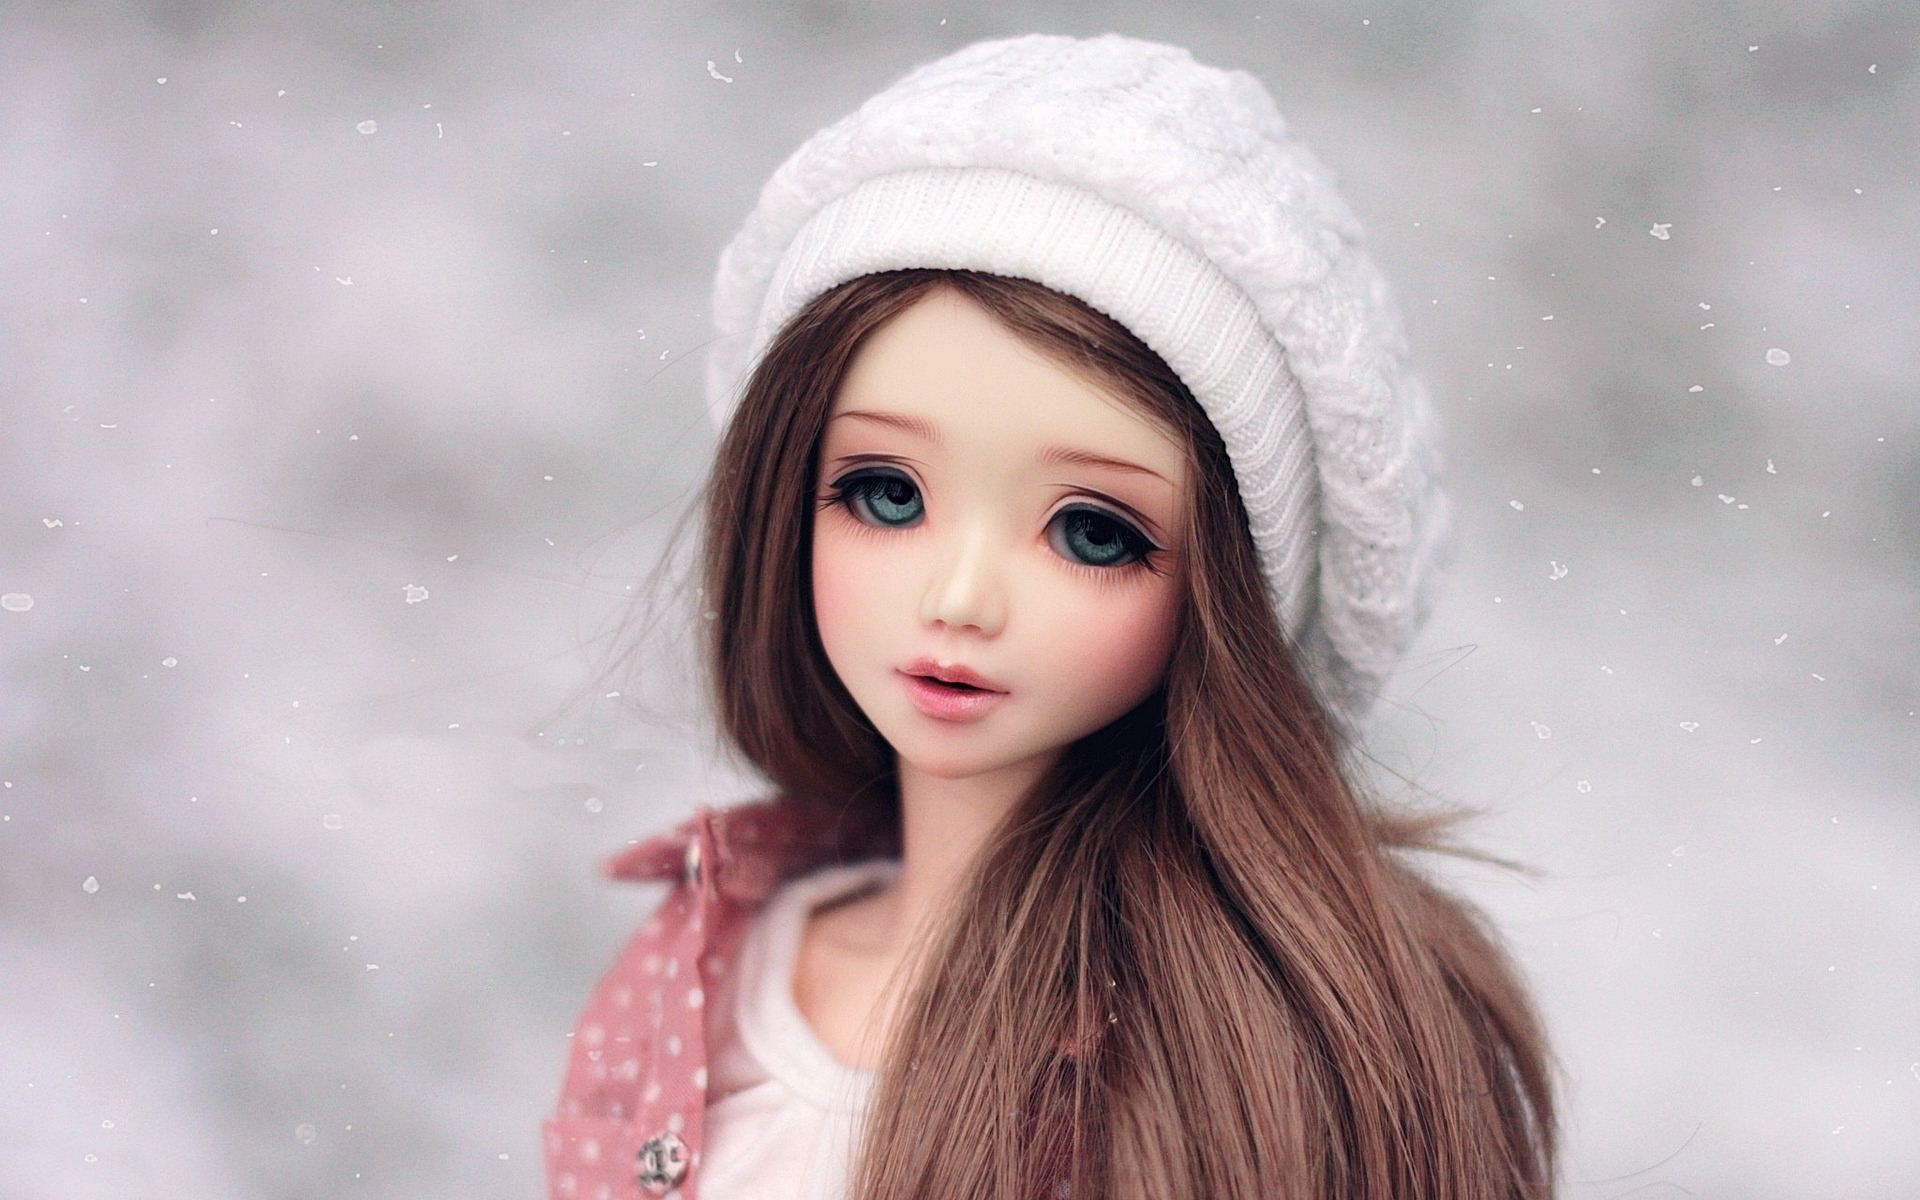 Wallpaper download barbie doll - Long Hair Cute Barbie Doll In Winter Cap Full Hd Wallpaper Image Photo